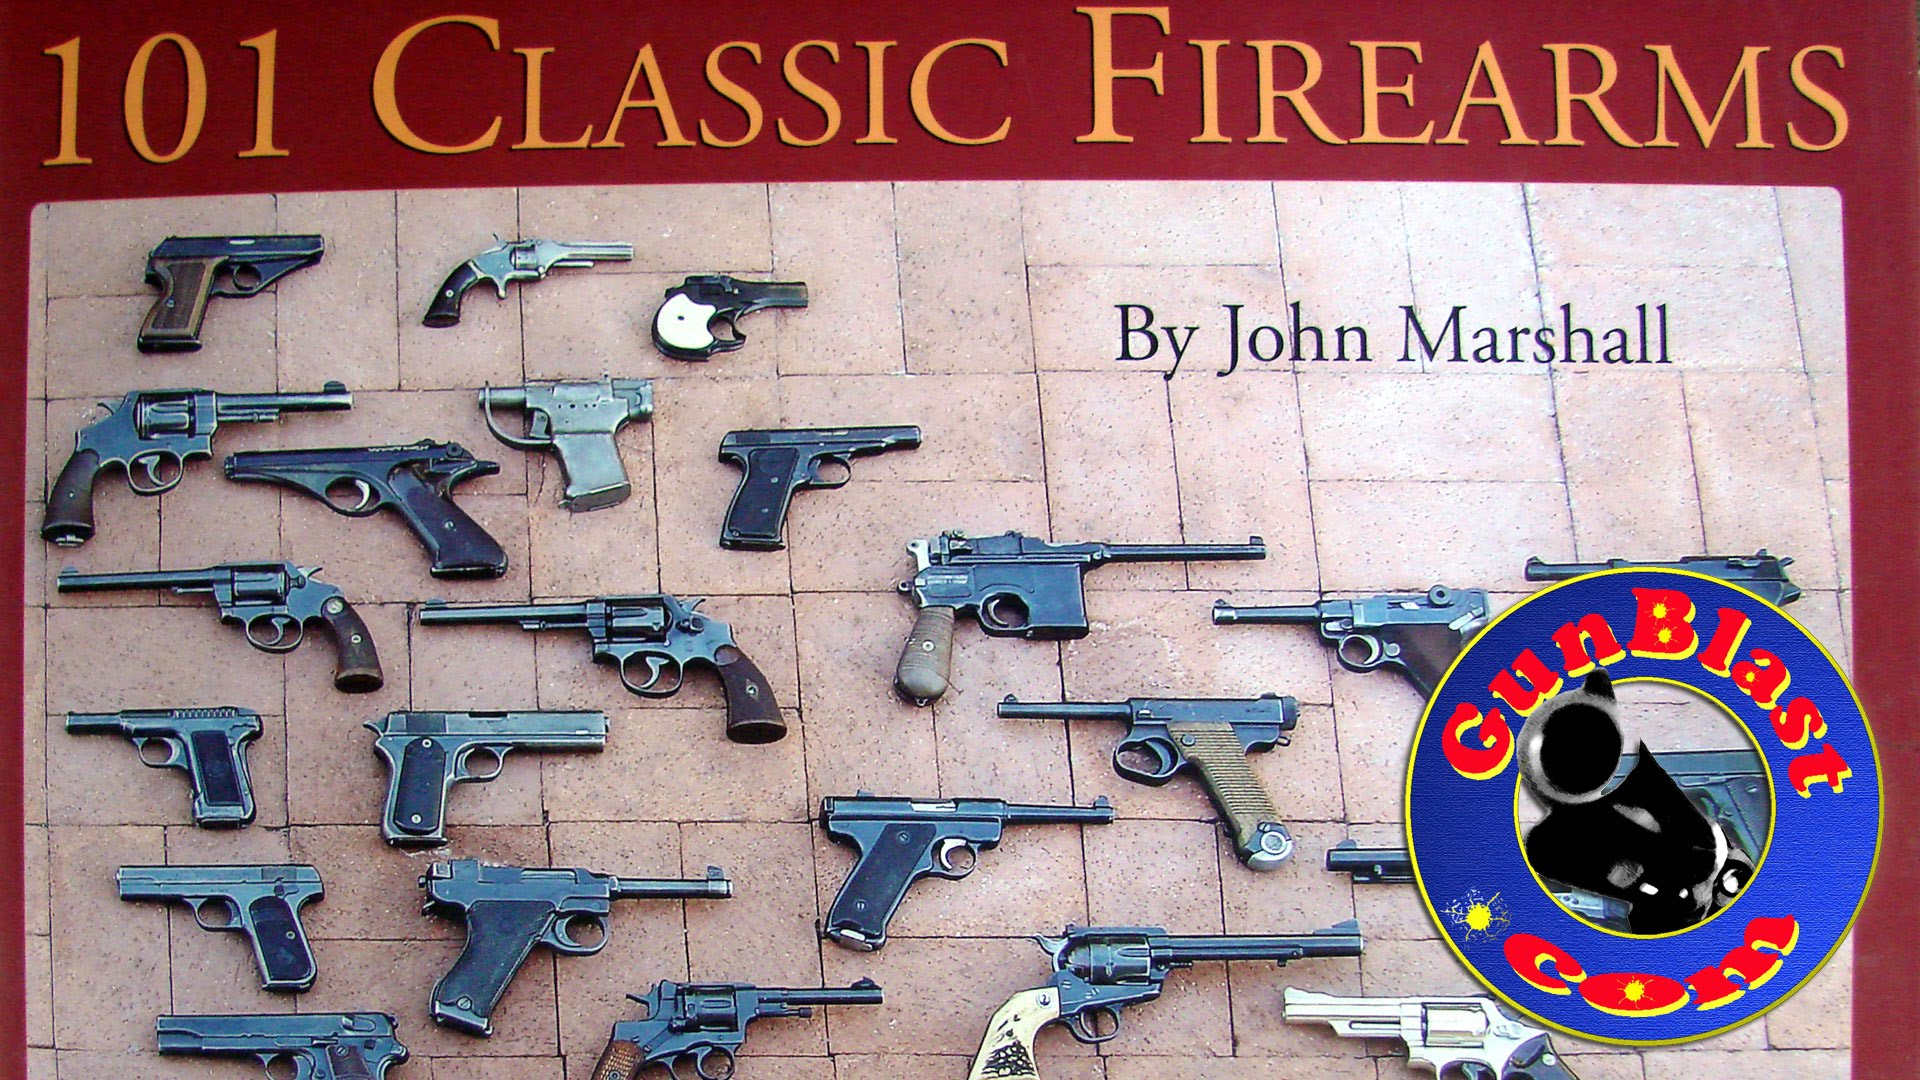 101 Classic Firearms by John Marshall